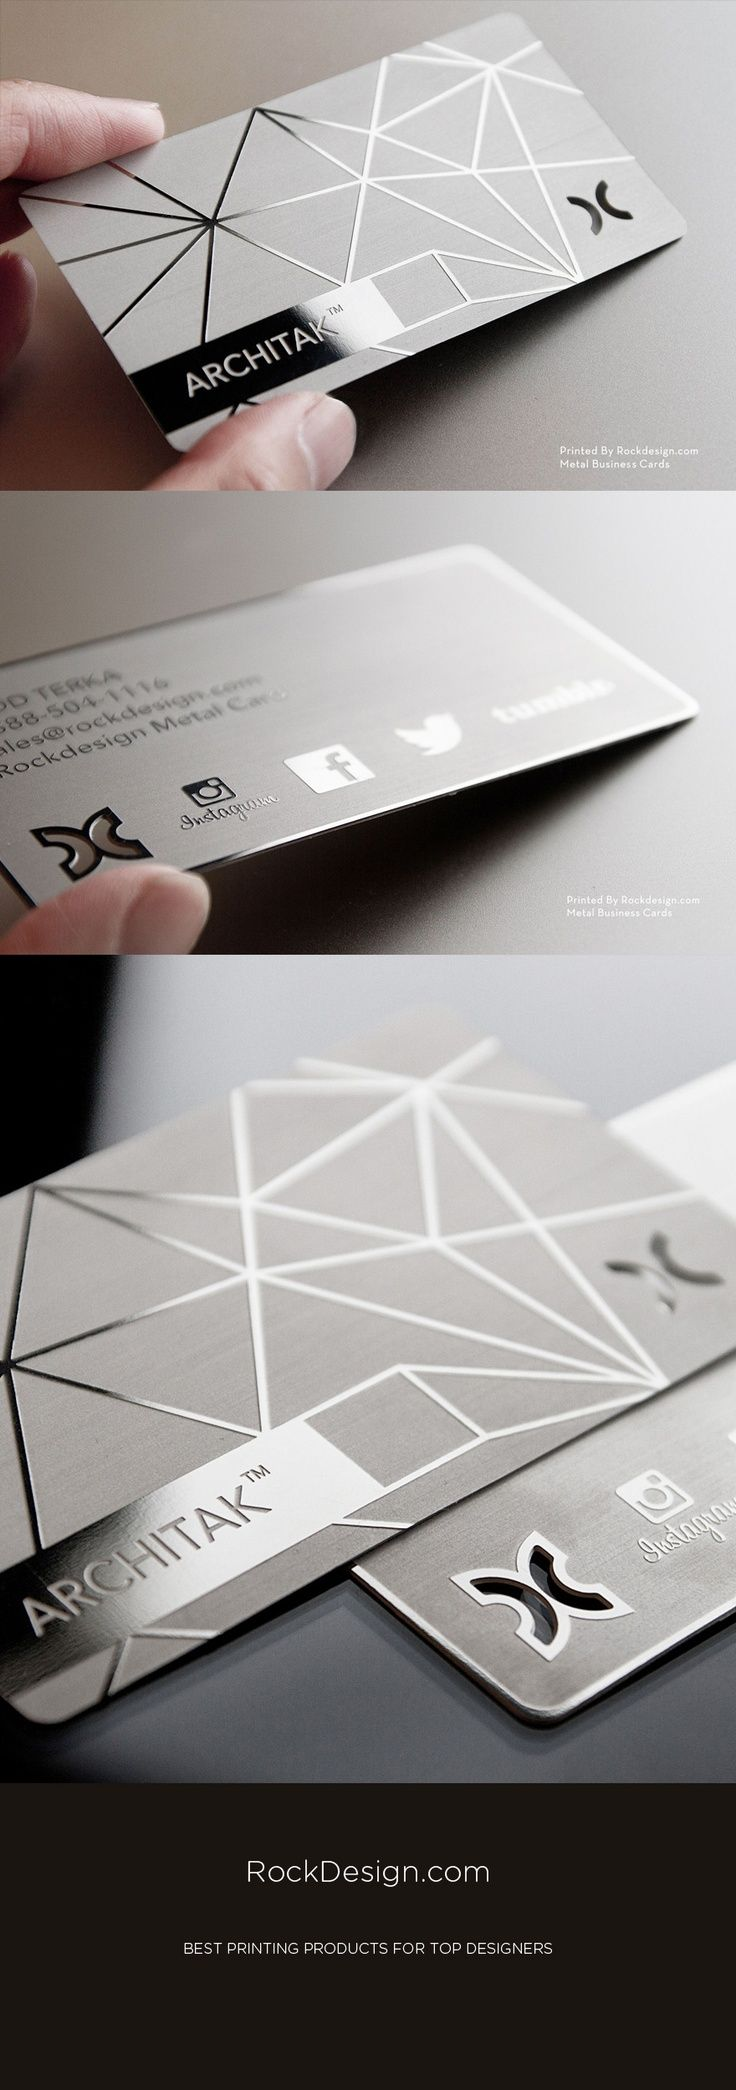 Create an unforgettable first impression with a fine and beautifully crafted metal business card. Need FREE ADVICE with your new business card? Contact us so we can help you with your new design https://www.facebook.com/allbcardspage